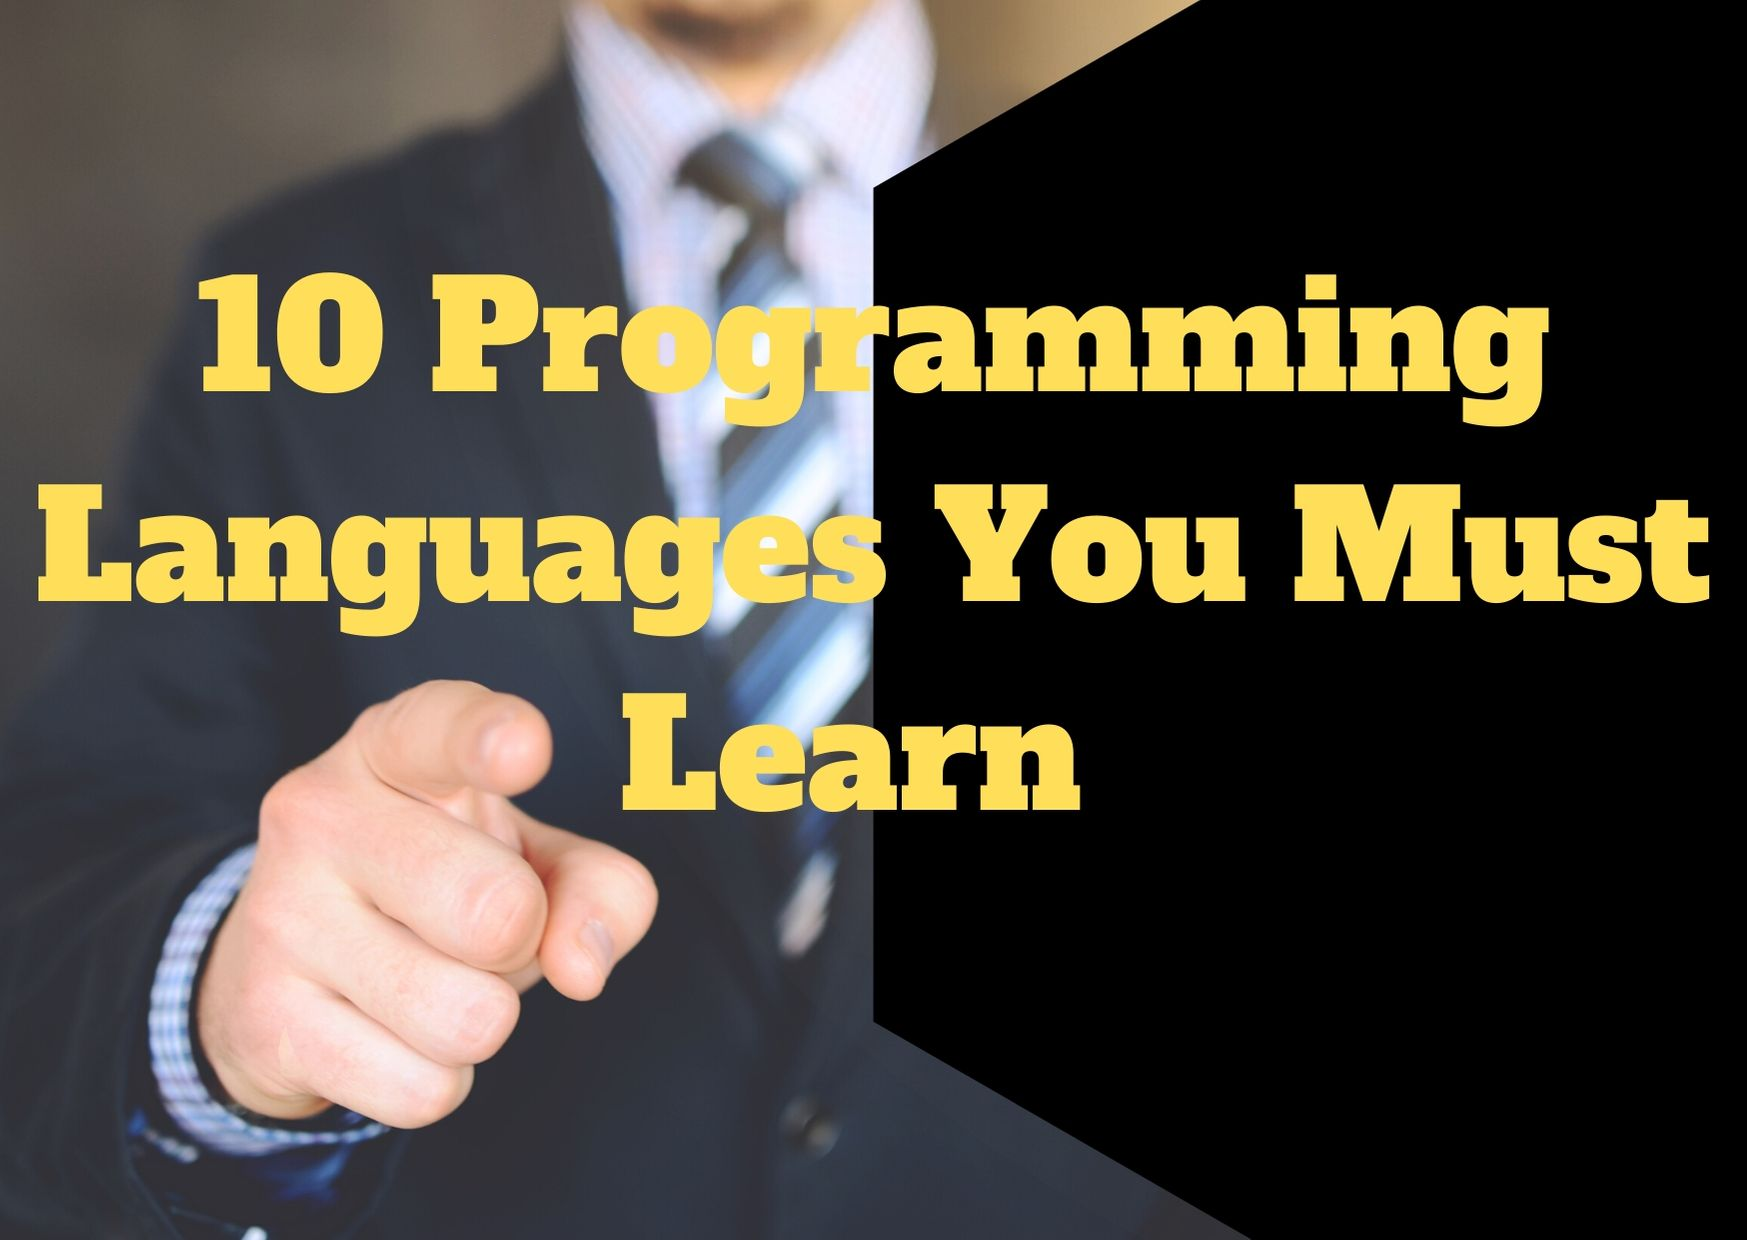 10 Programming Languages You Must Learn